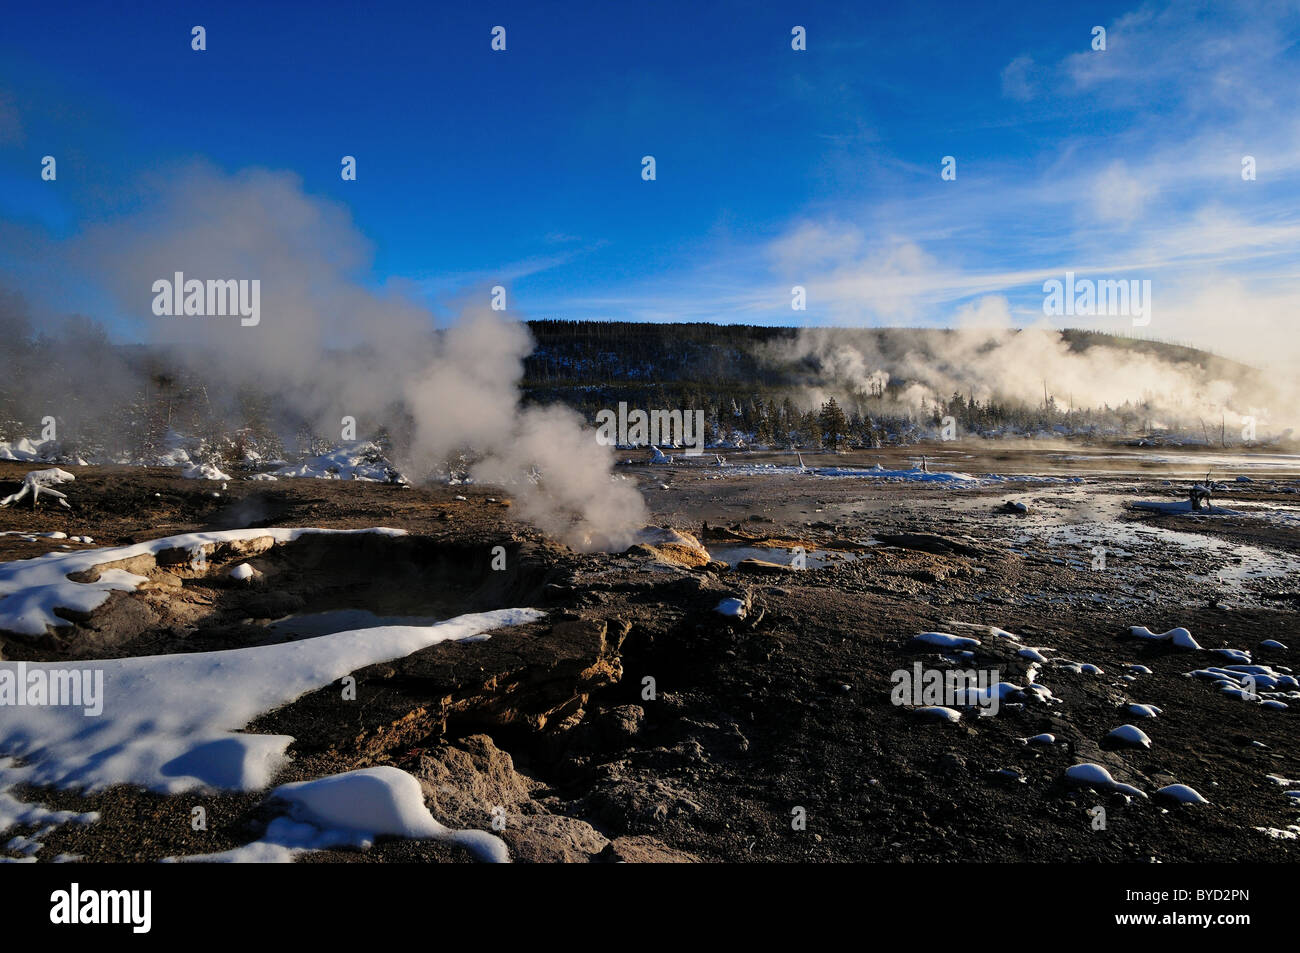 Steam vents at the Norris Geyser Basin. Yellowstone National Park, Wyoming, USA. - Stock Image